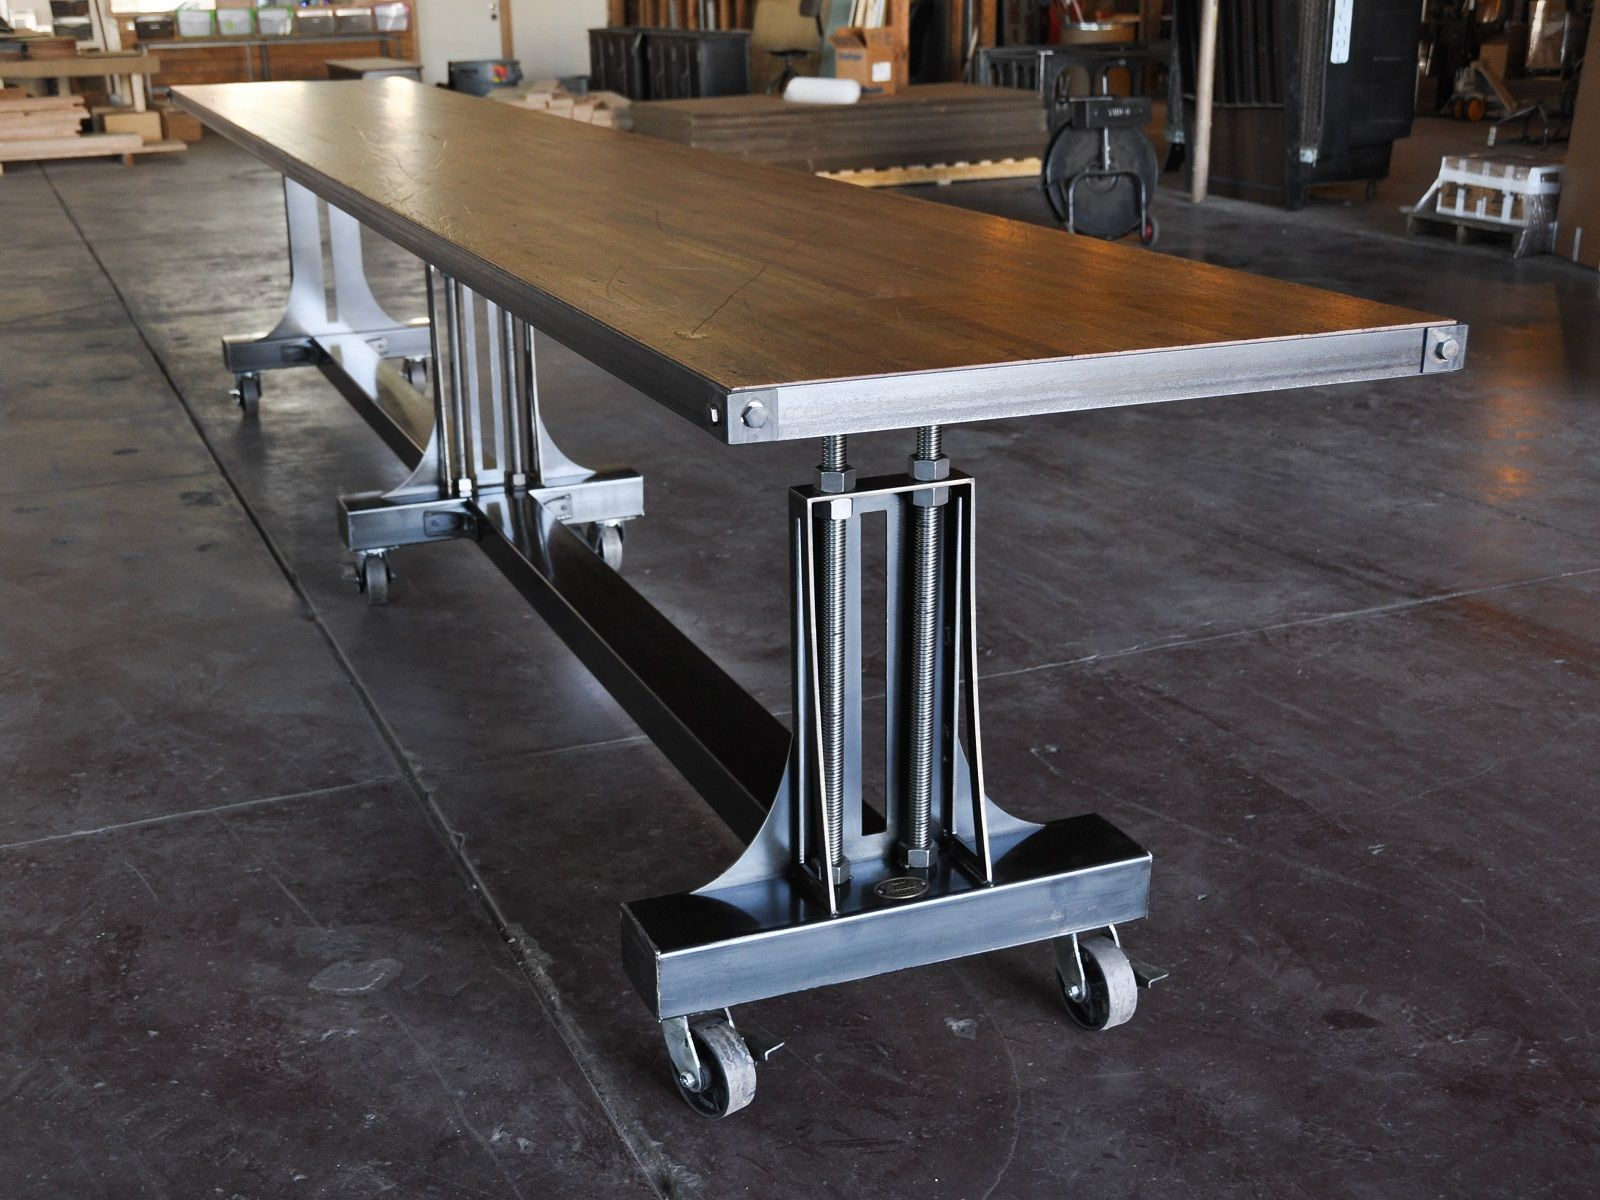 Factory caster vintage industrial furniture - Post Industrial Table